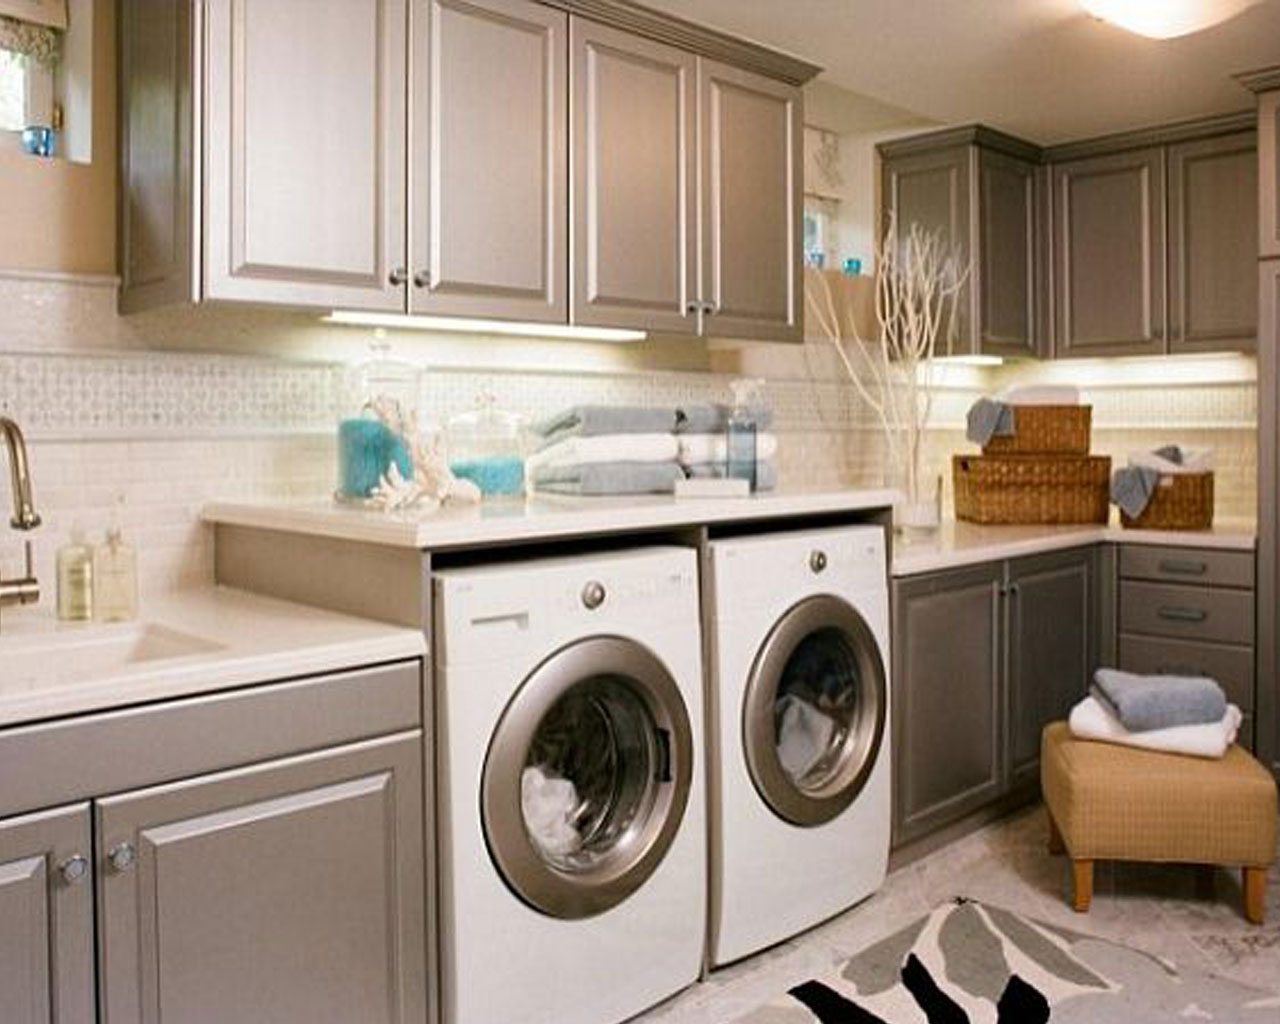 Laundry Room Design Ideas | SMJ Construction